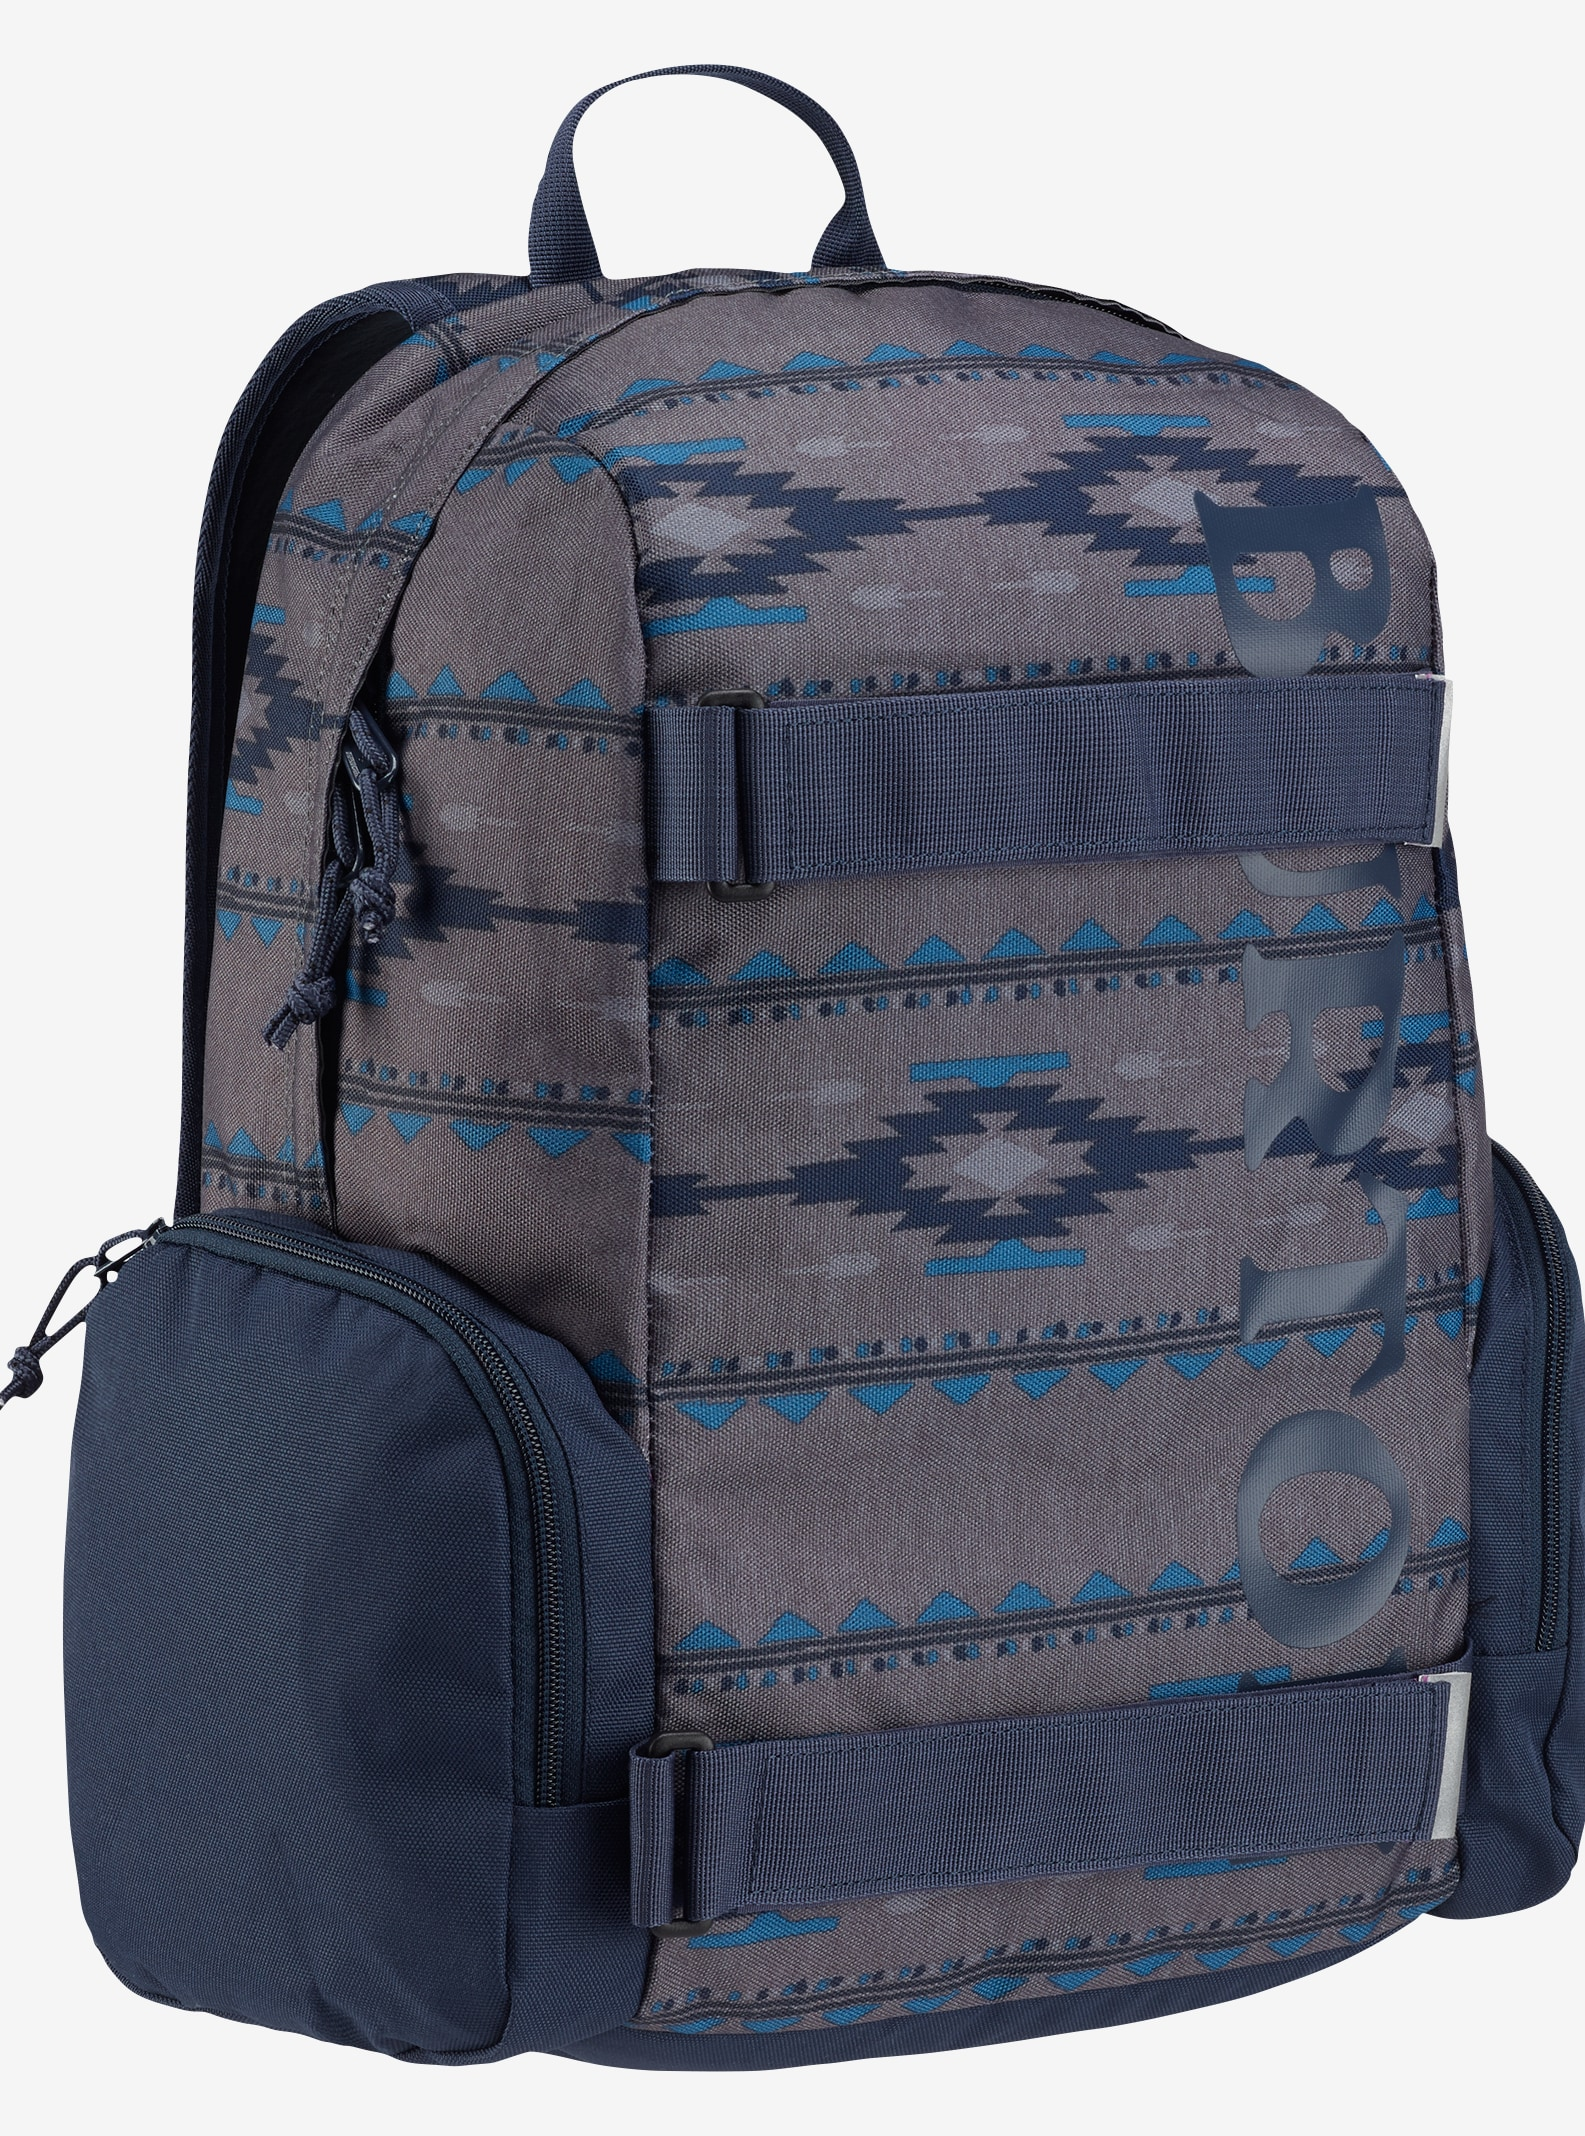 Burton Kids' Emphasis Backpack shown in Faded Saddle Stripe Print